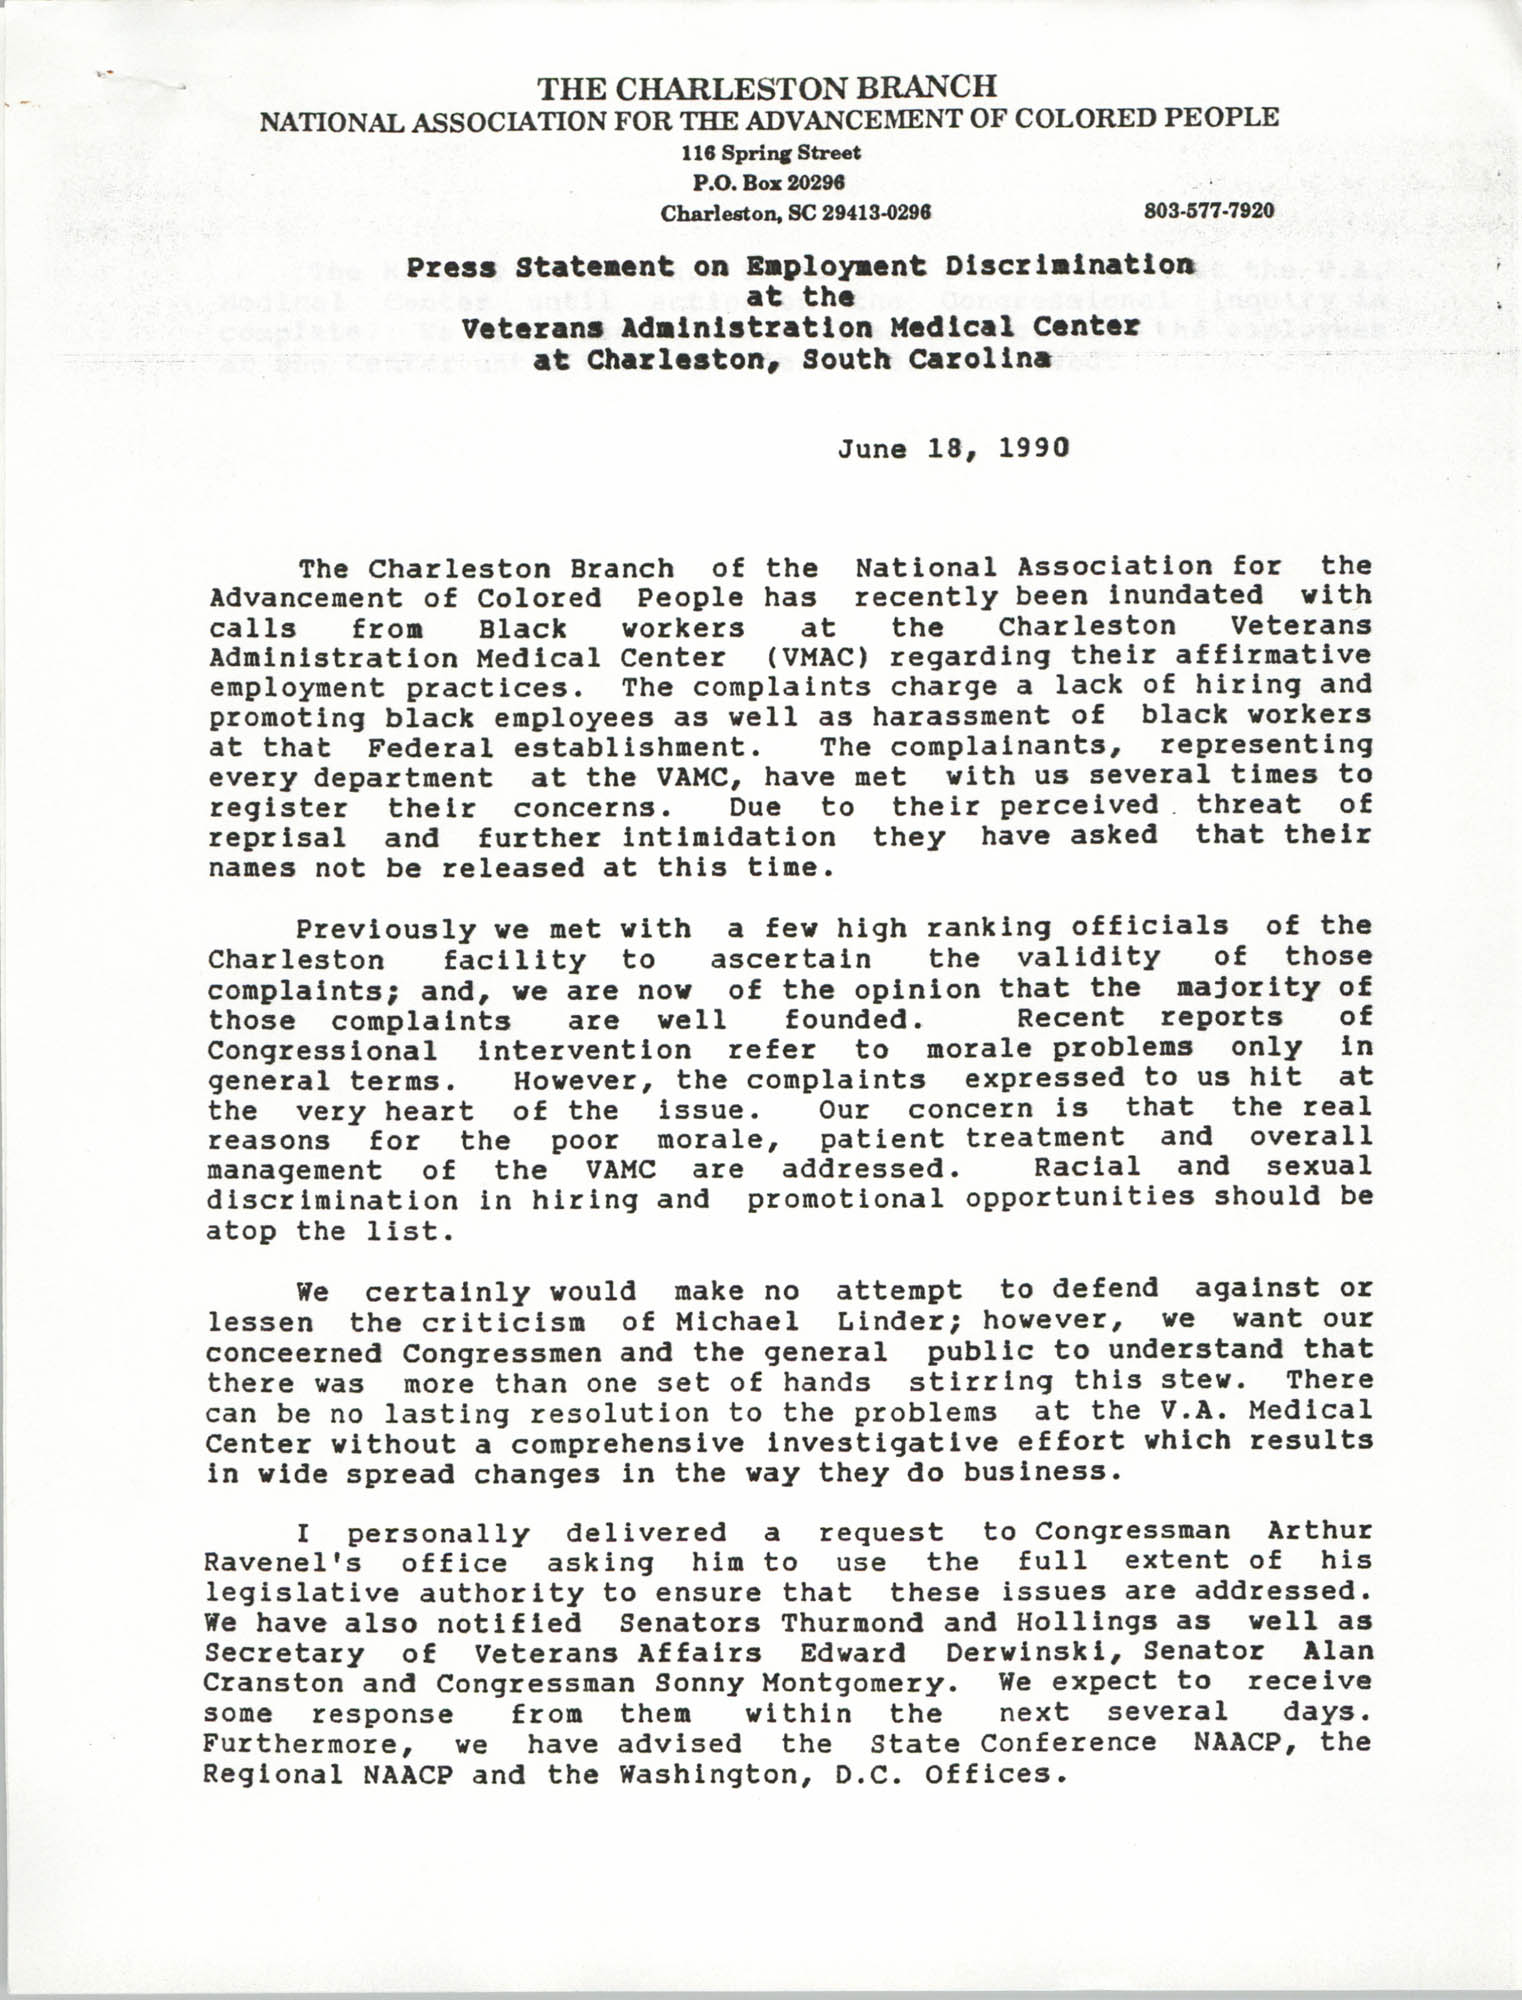 Press Statement, National Association for the Advancement of Colored People, June 18, 1990